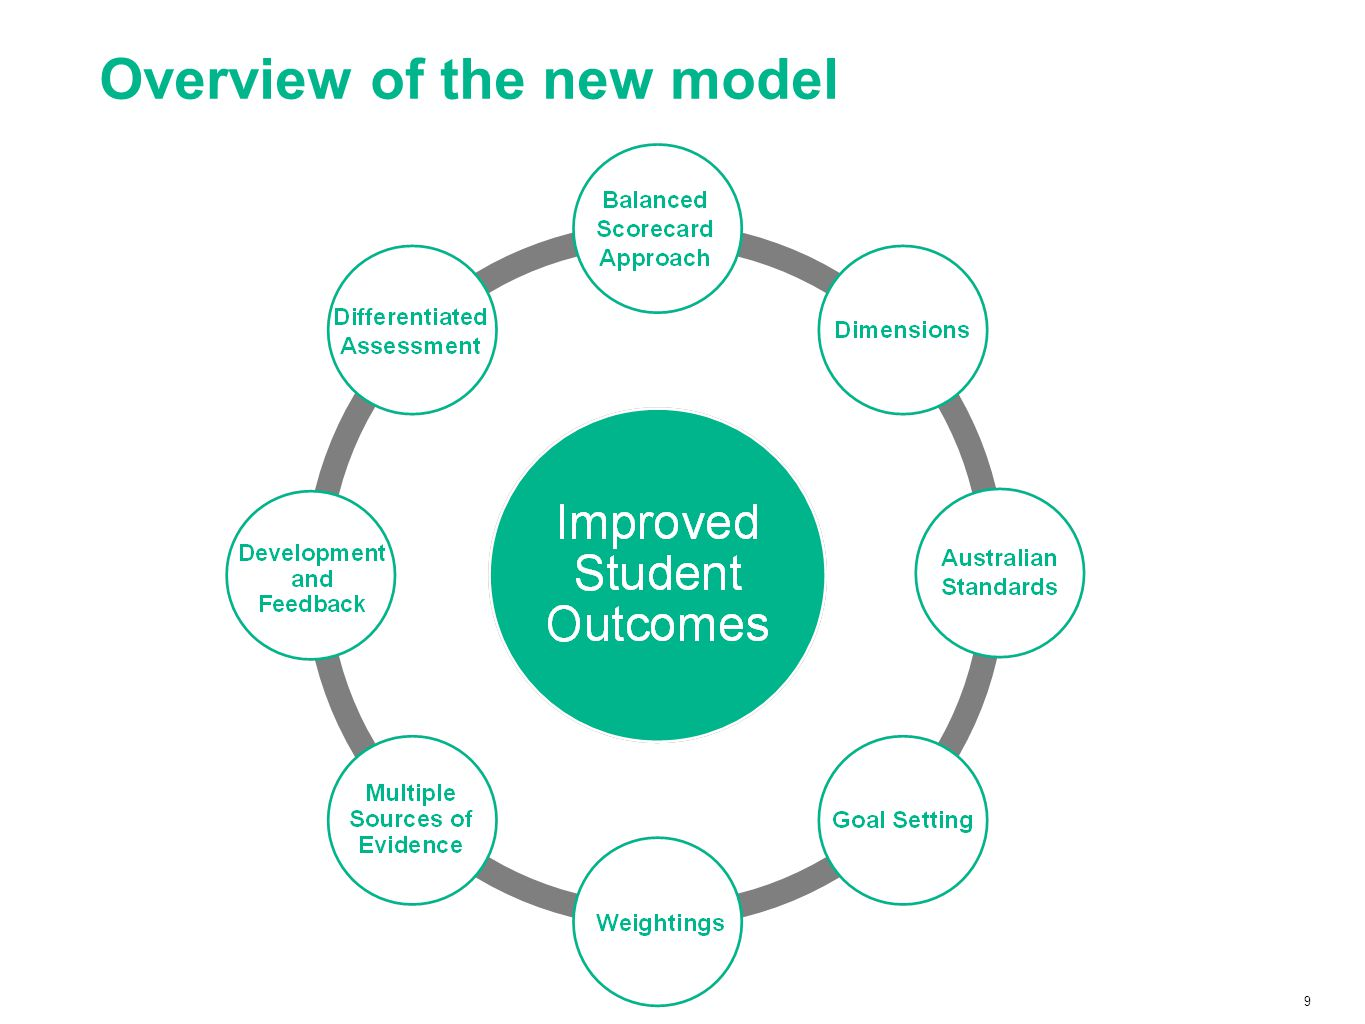 30 Expectations for 2014 and beyond – differentiated outcomes 2014 – Minimum expectations2015 – Full implementation Differentiation of performance and development outcomes For 2014, Principals decide whether they use a 4-point scale: Exceeds Fully Meets Partially Meets Fails to Meet or, opt to use a 3-point scale: Fully Meets Partially Meets Fails to Meet All Principals will use a 4- point scale